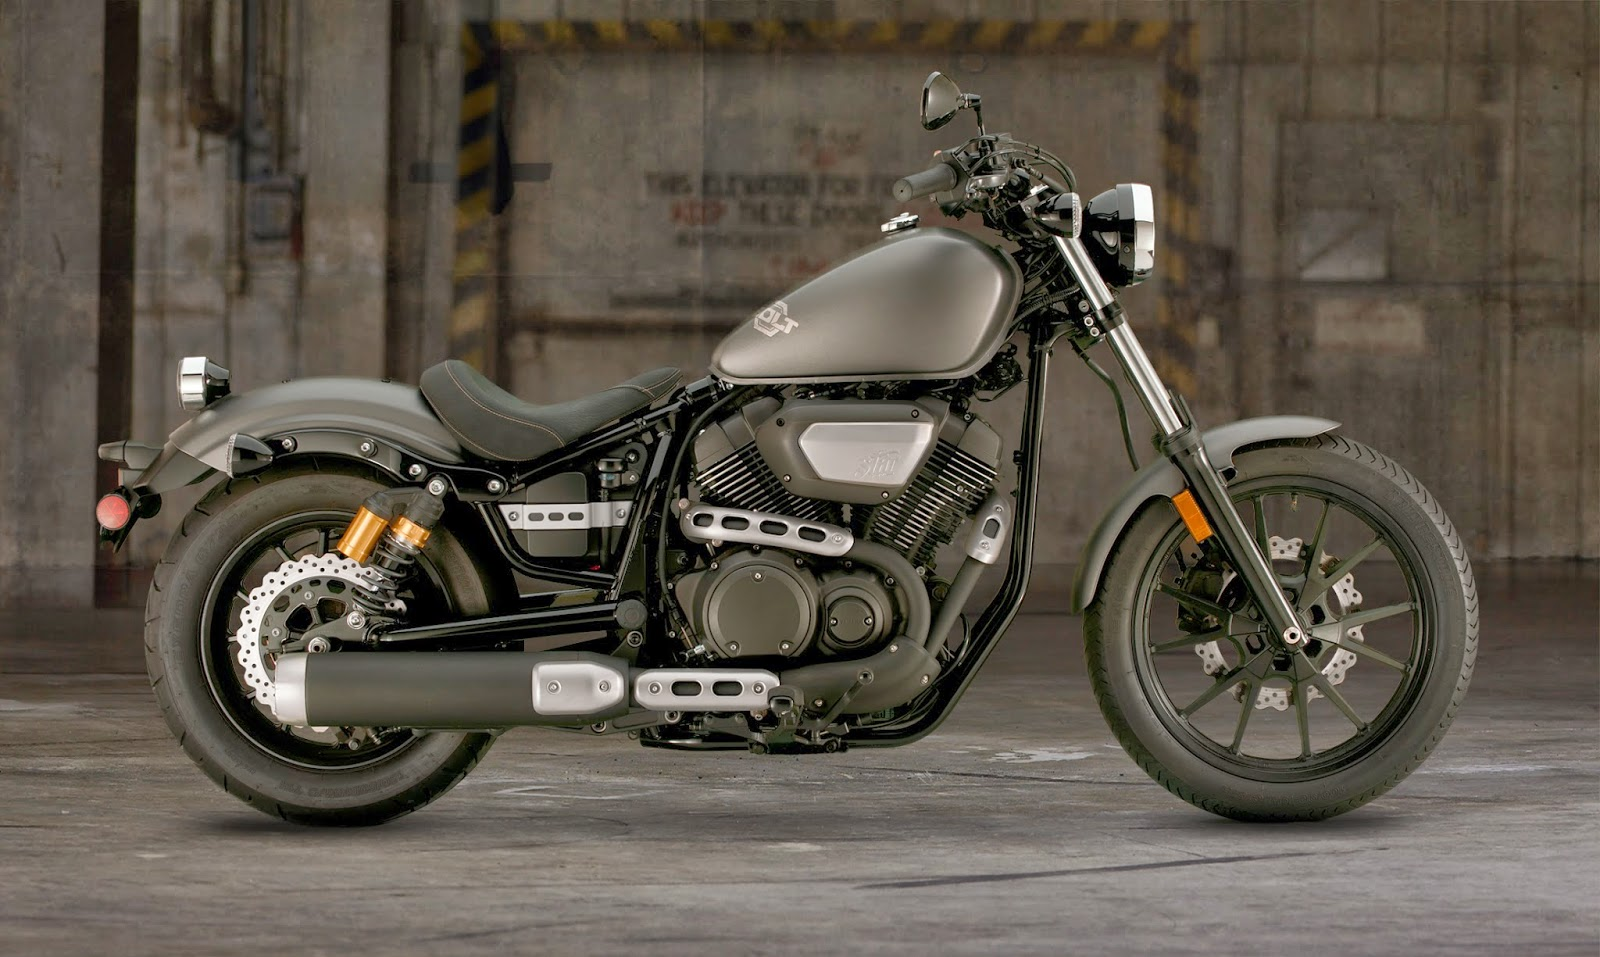 modern muscular and affordable the new 2014 yamaha bolt 950 pete 39 s cycle company inc. Black Bedroom Furniture Sets. Home Design Ideas